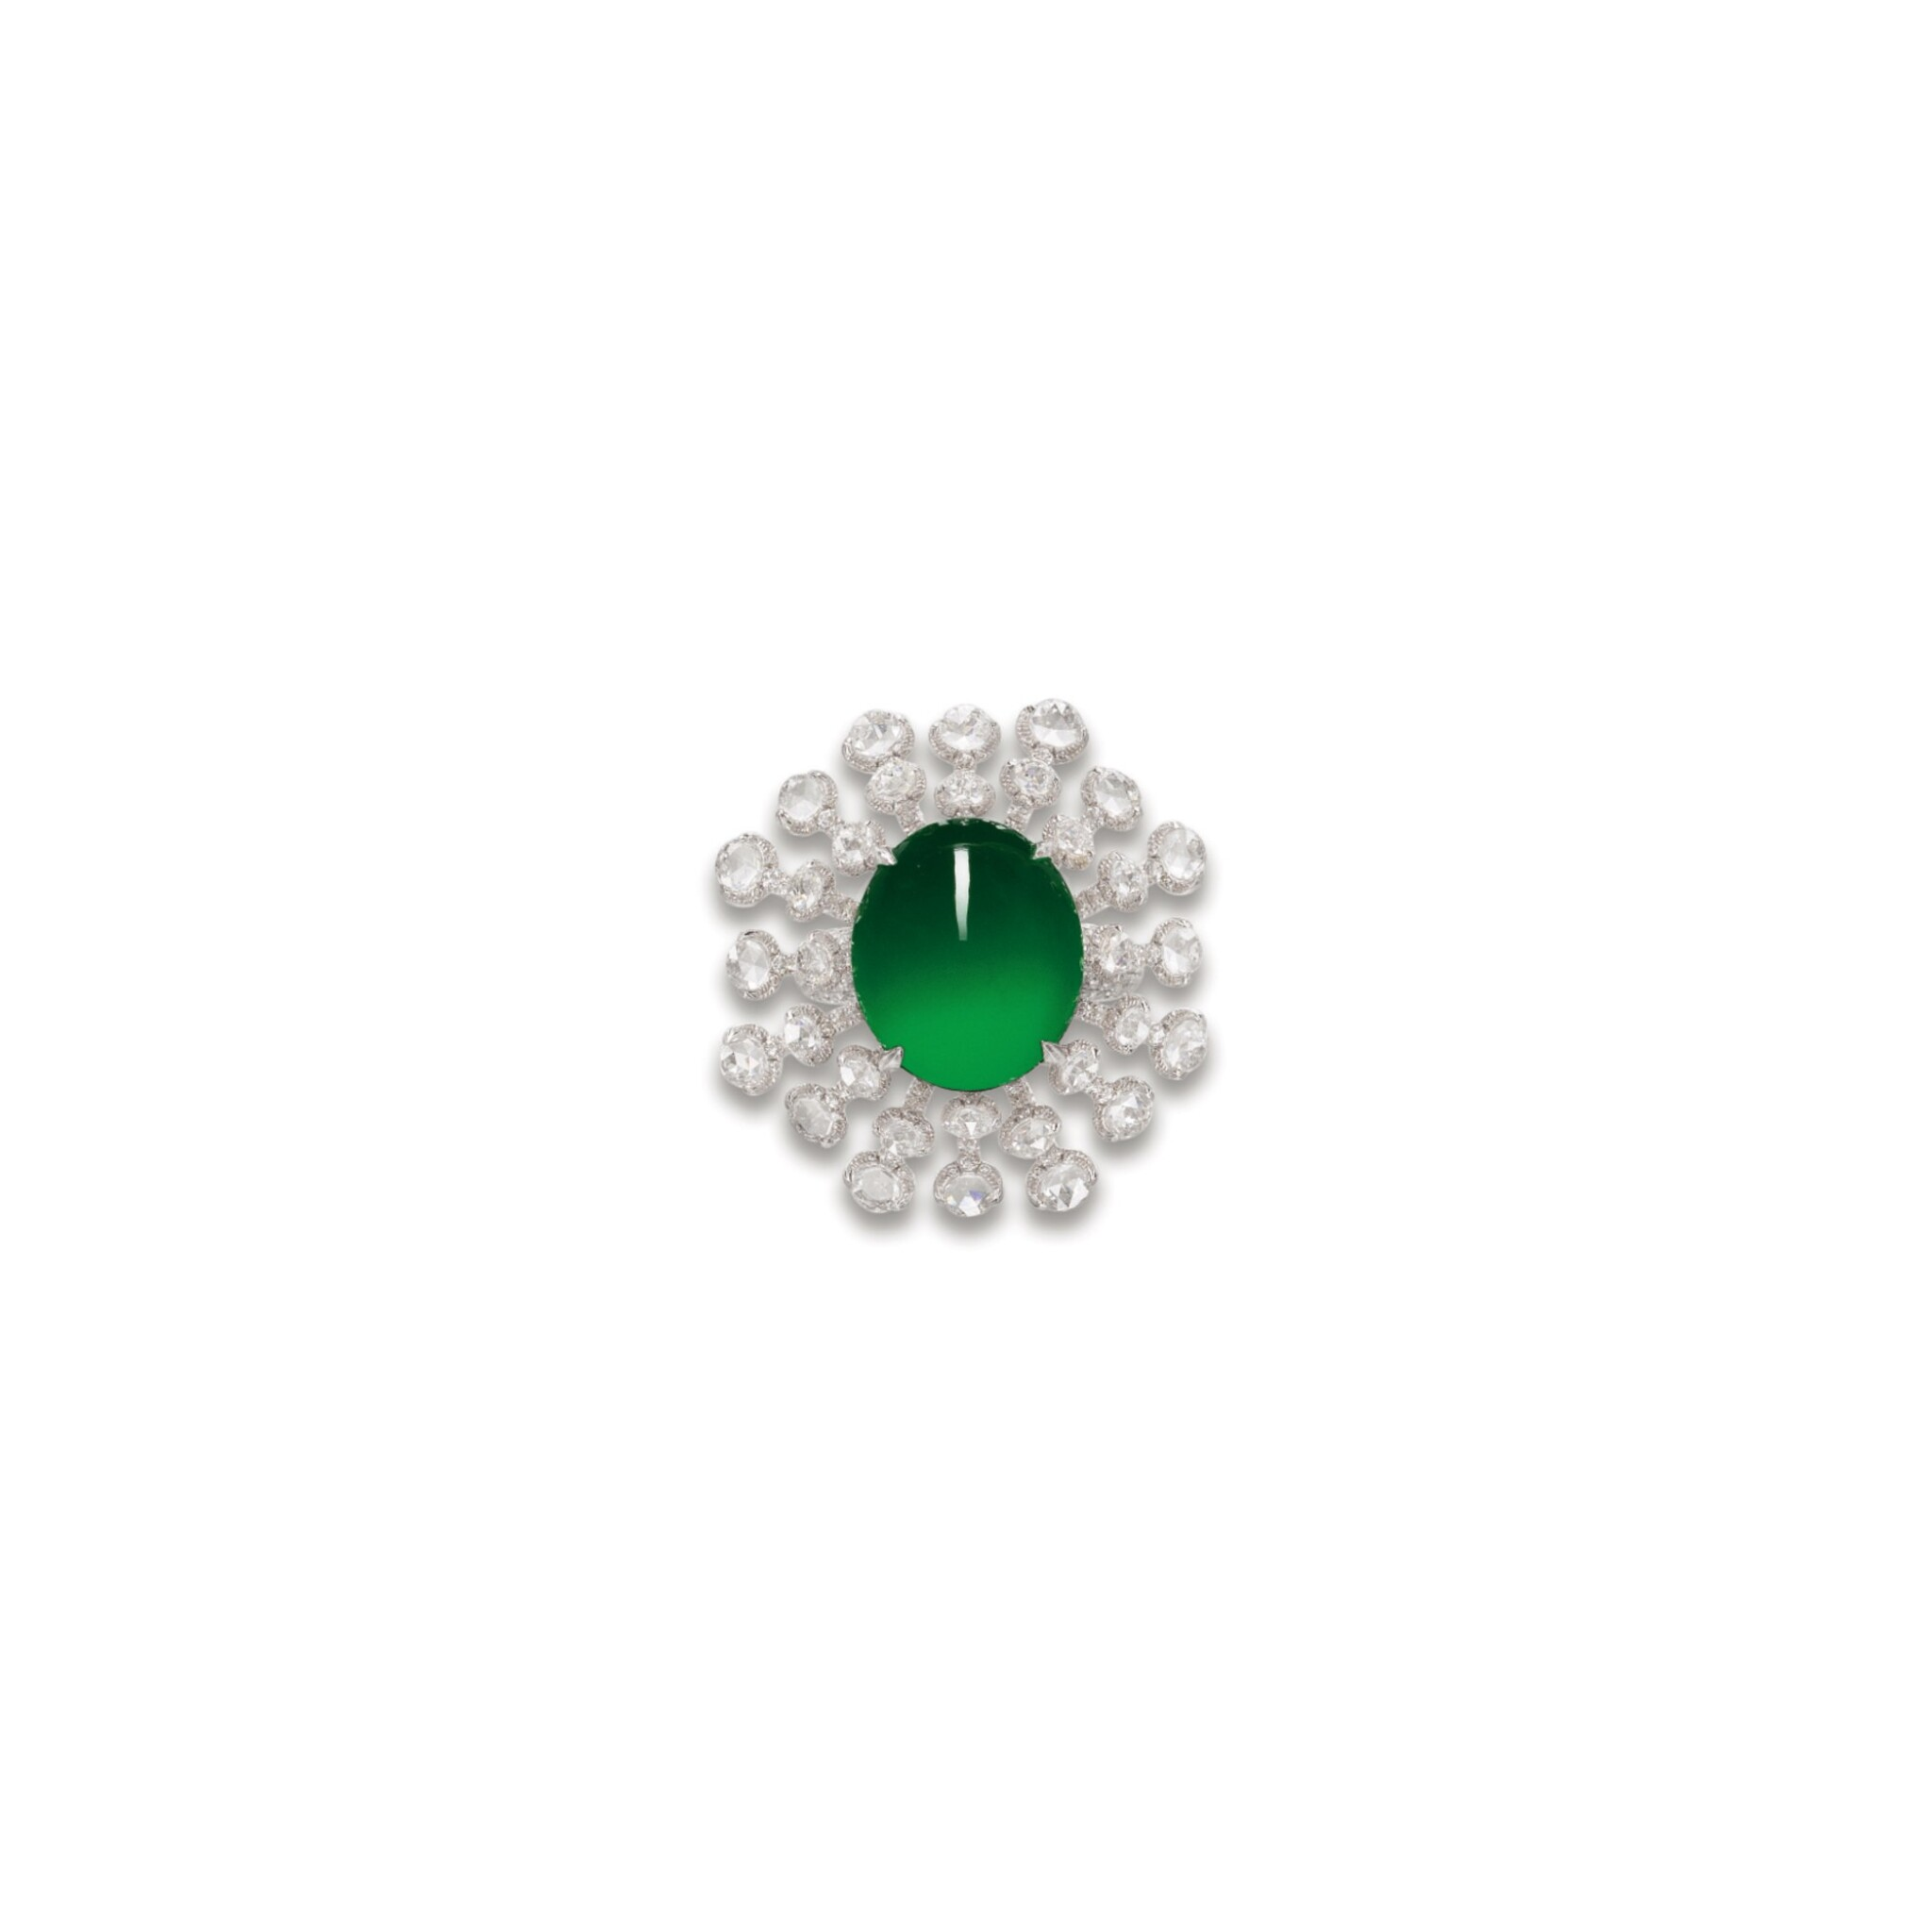 View full screen - View 1 of Lot 1764. JADEITE AND DIAMOND RING  天然翡翠 配 鑽石 戒指.